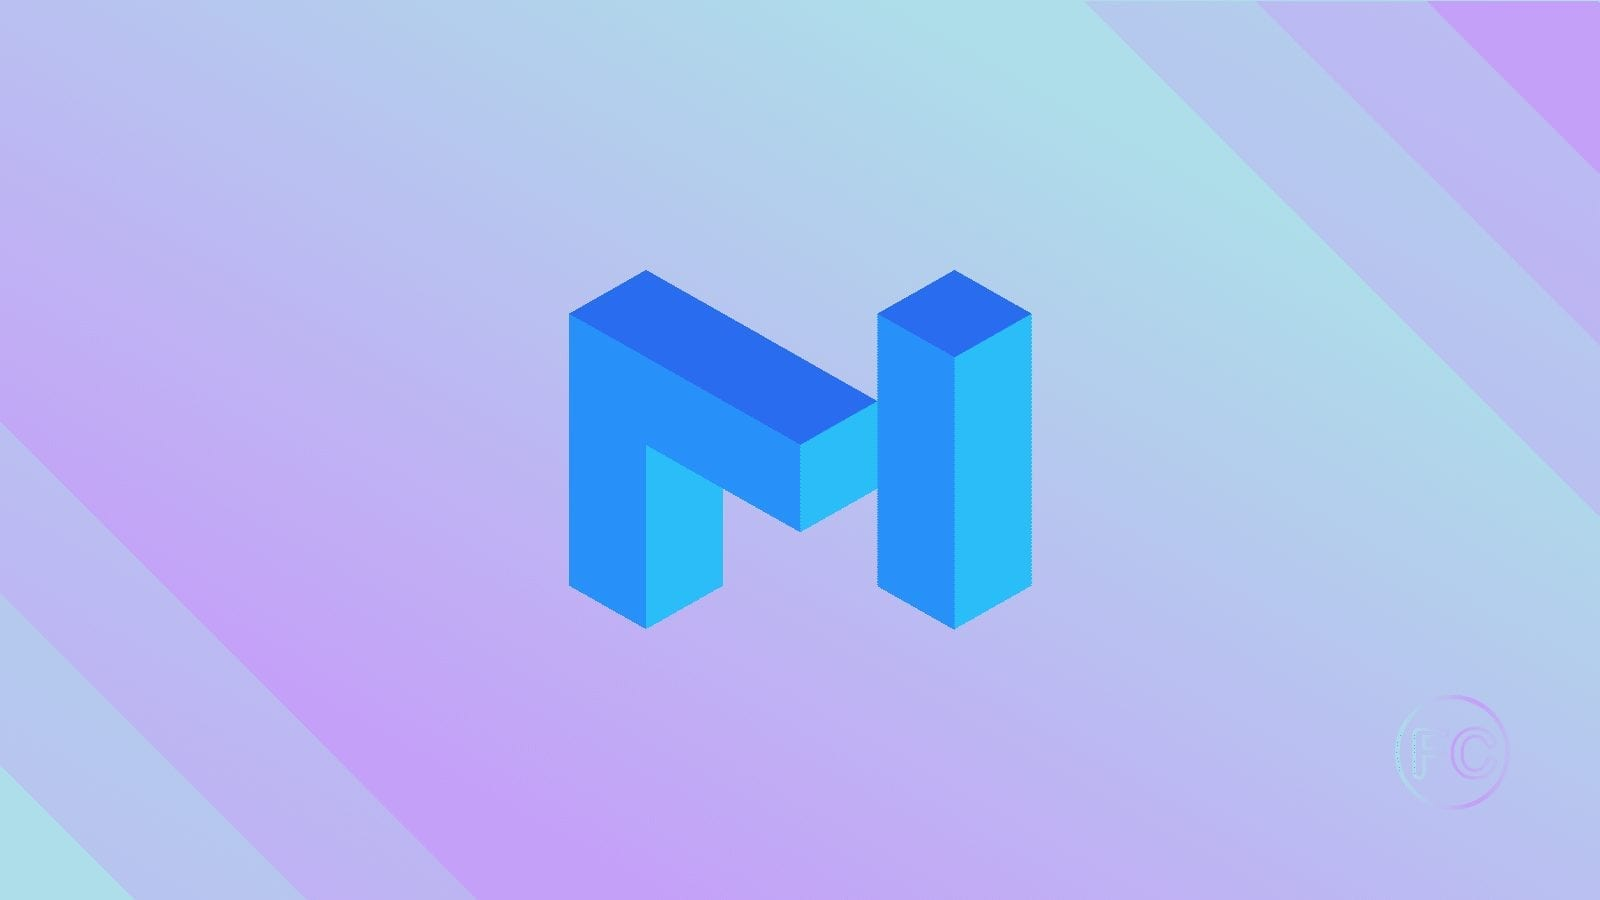 Matic Network crypto